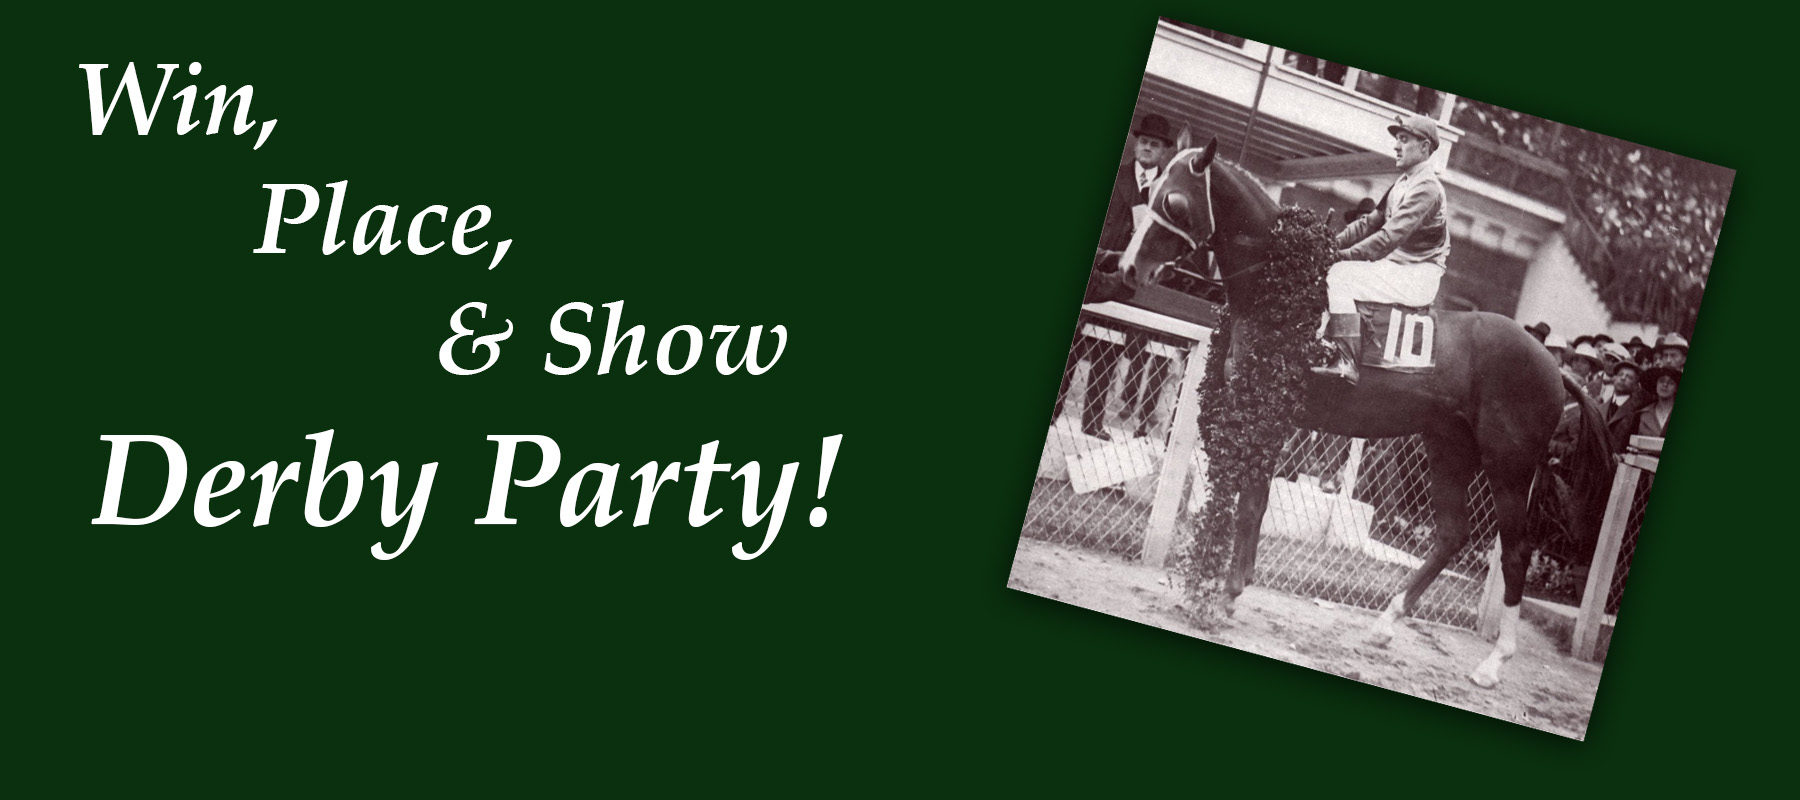 Win, Place, & Show Derby Party